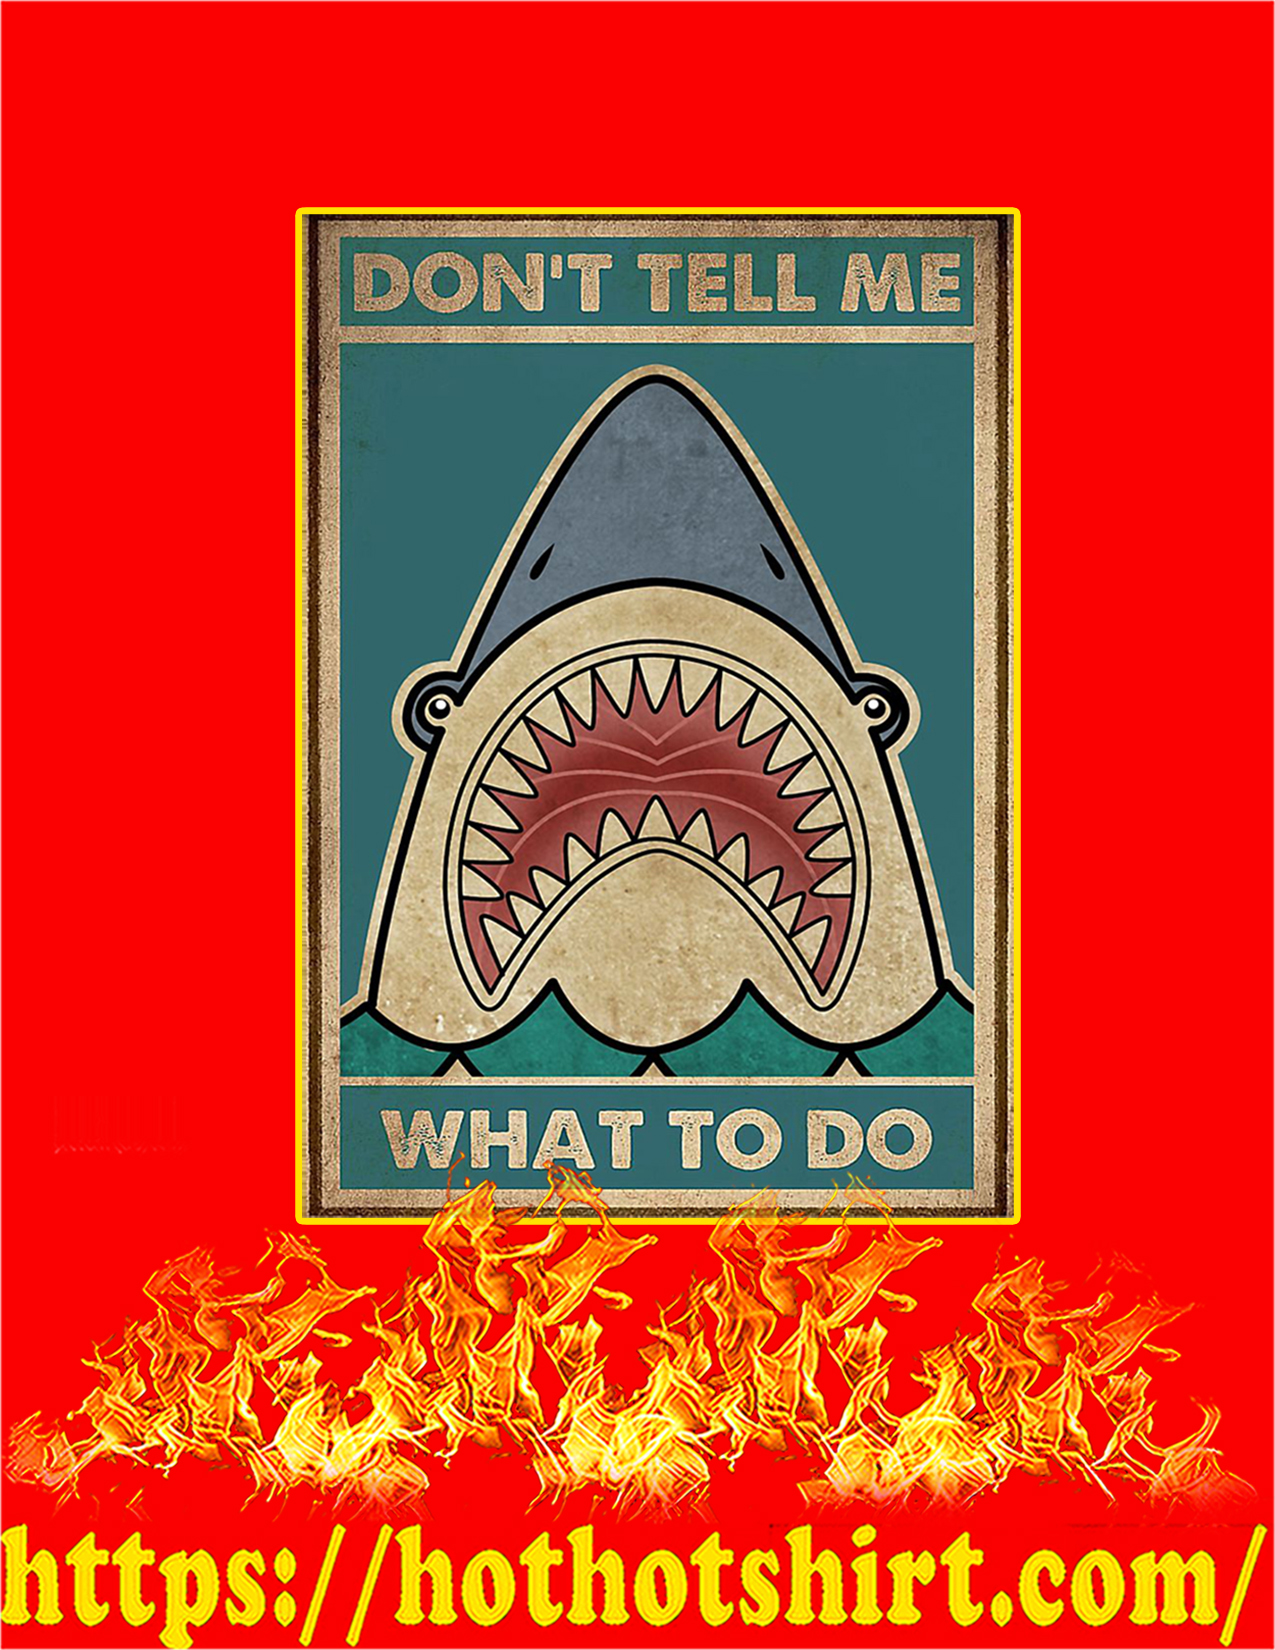 Shark Don't tell me what to do poster - A2